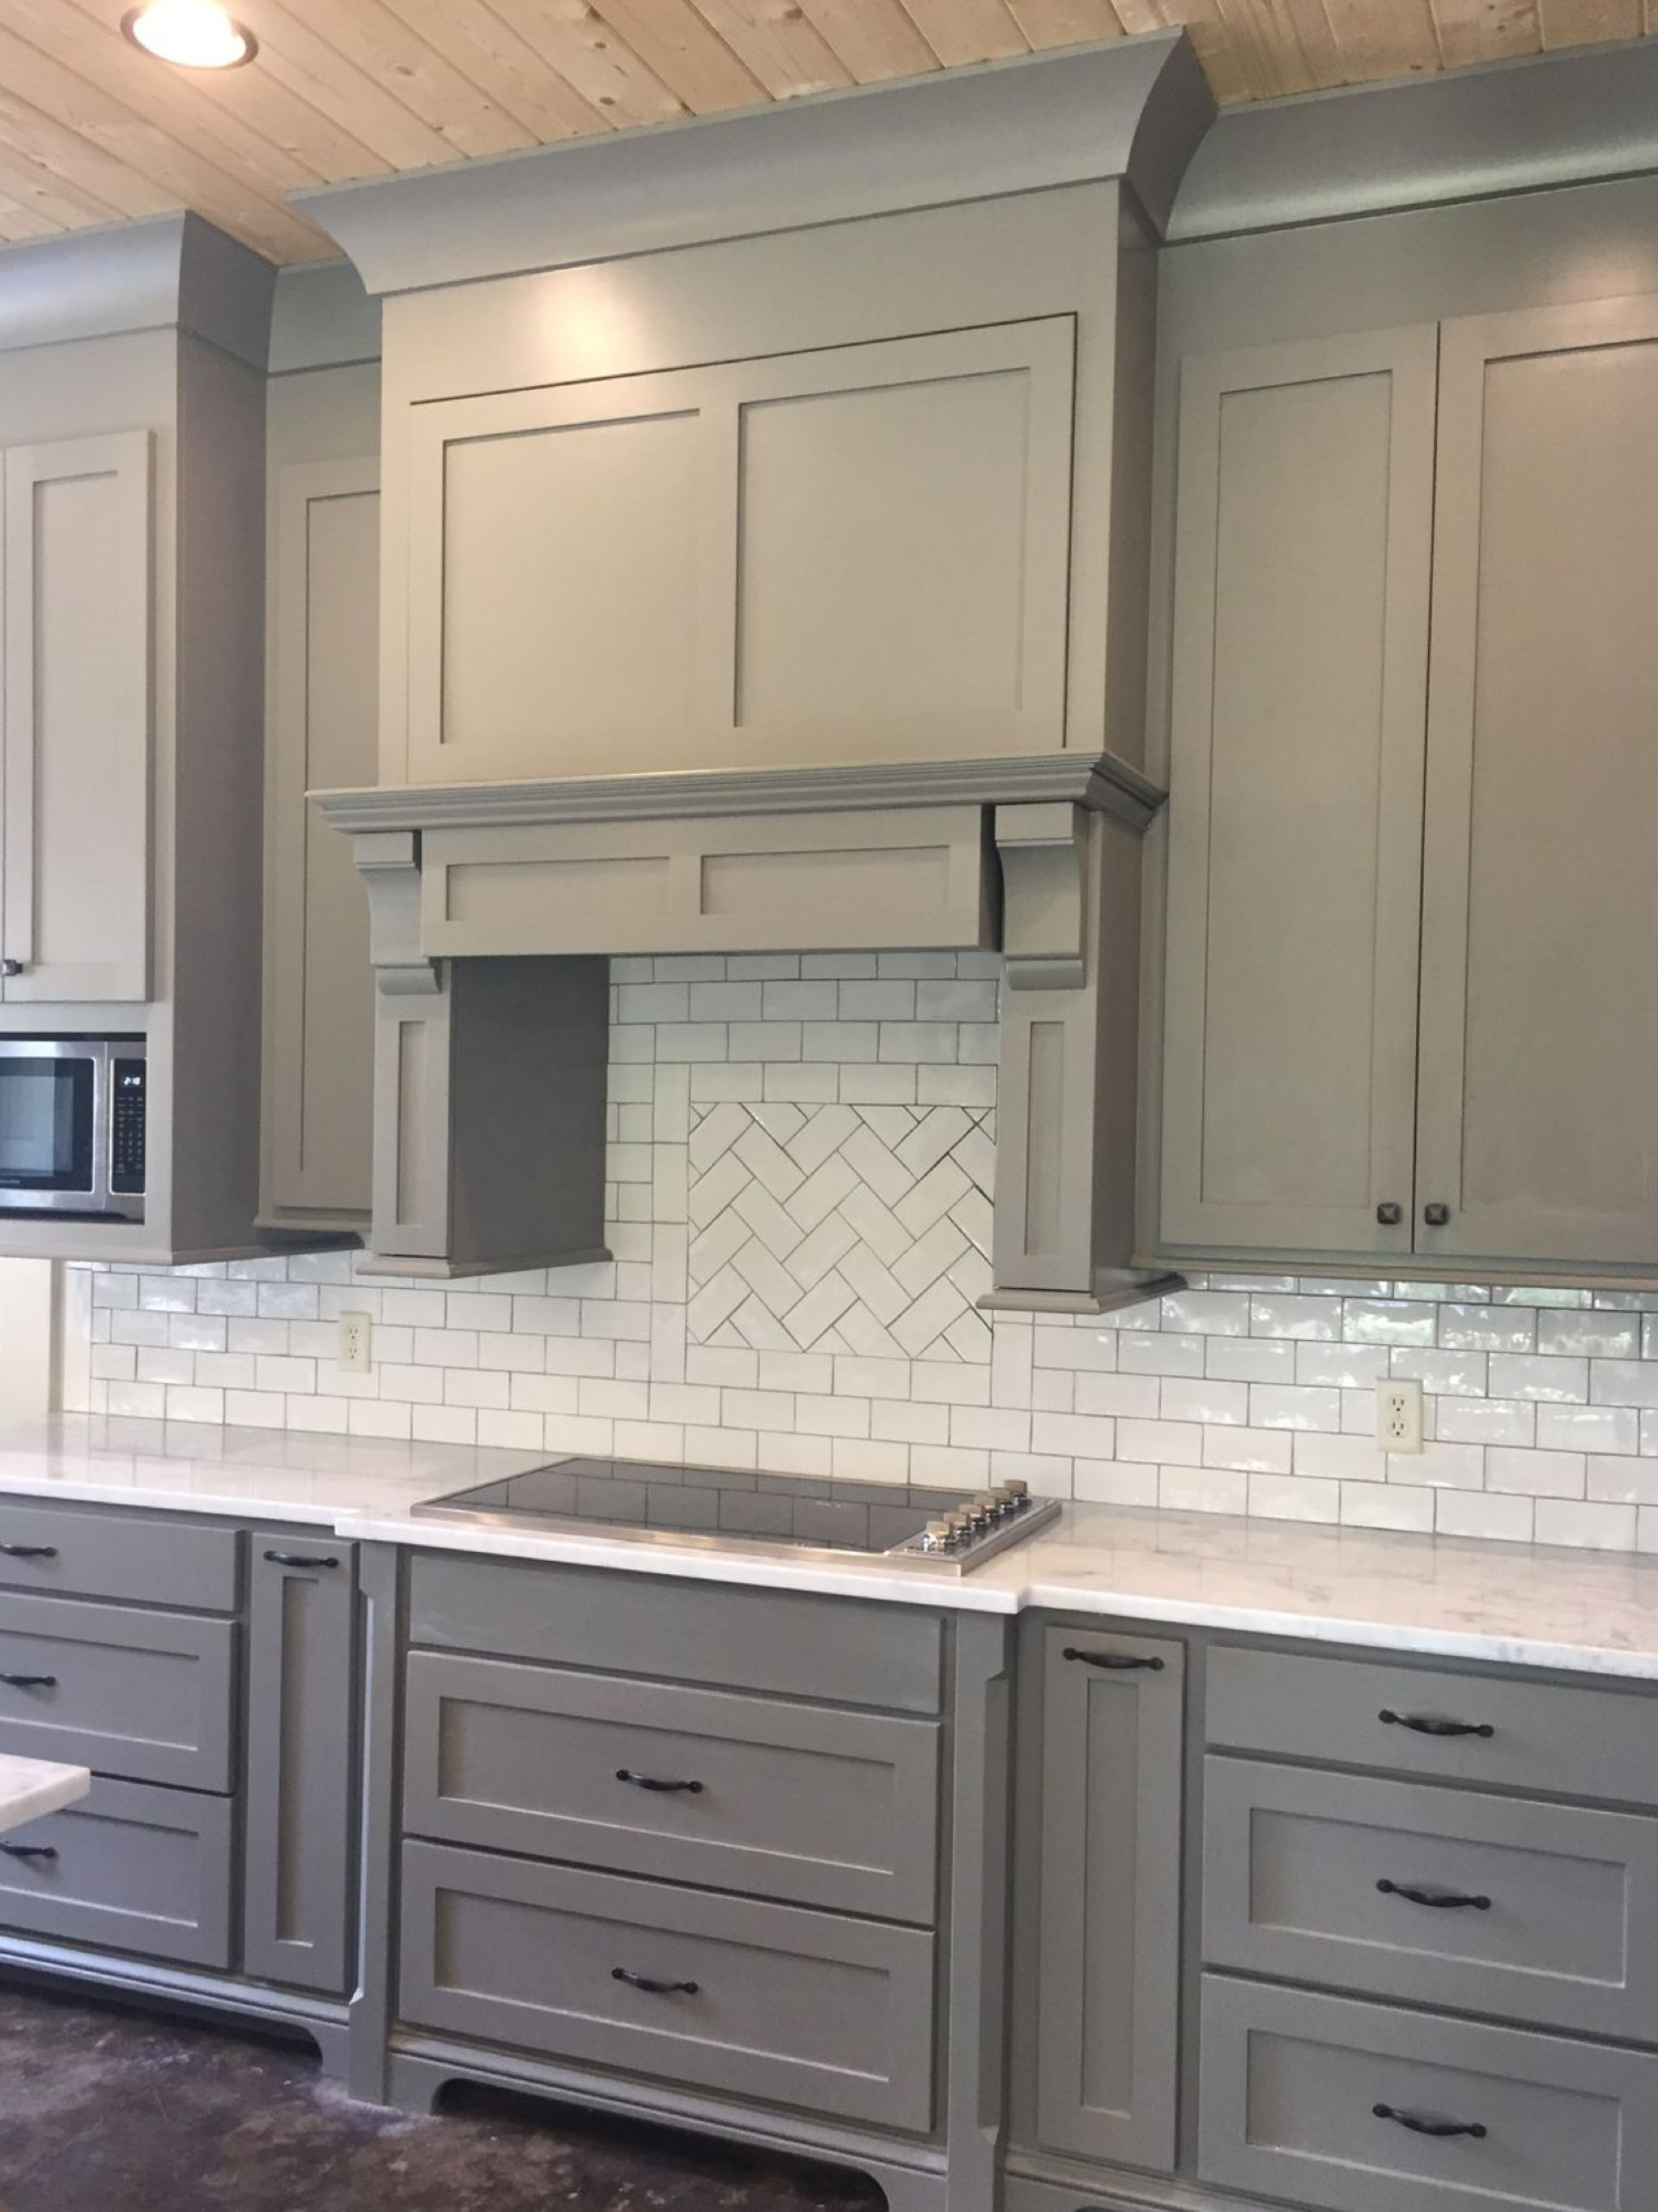 Shaker Style Kitchen Cabinets 20 Ideas Trends How To Design